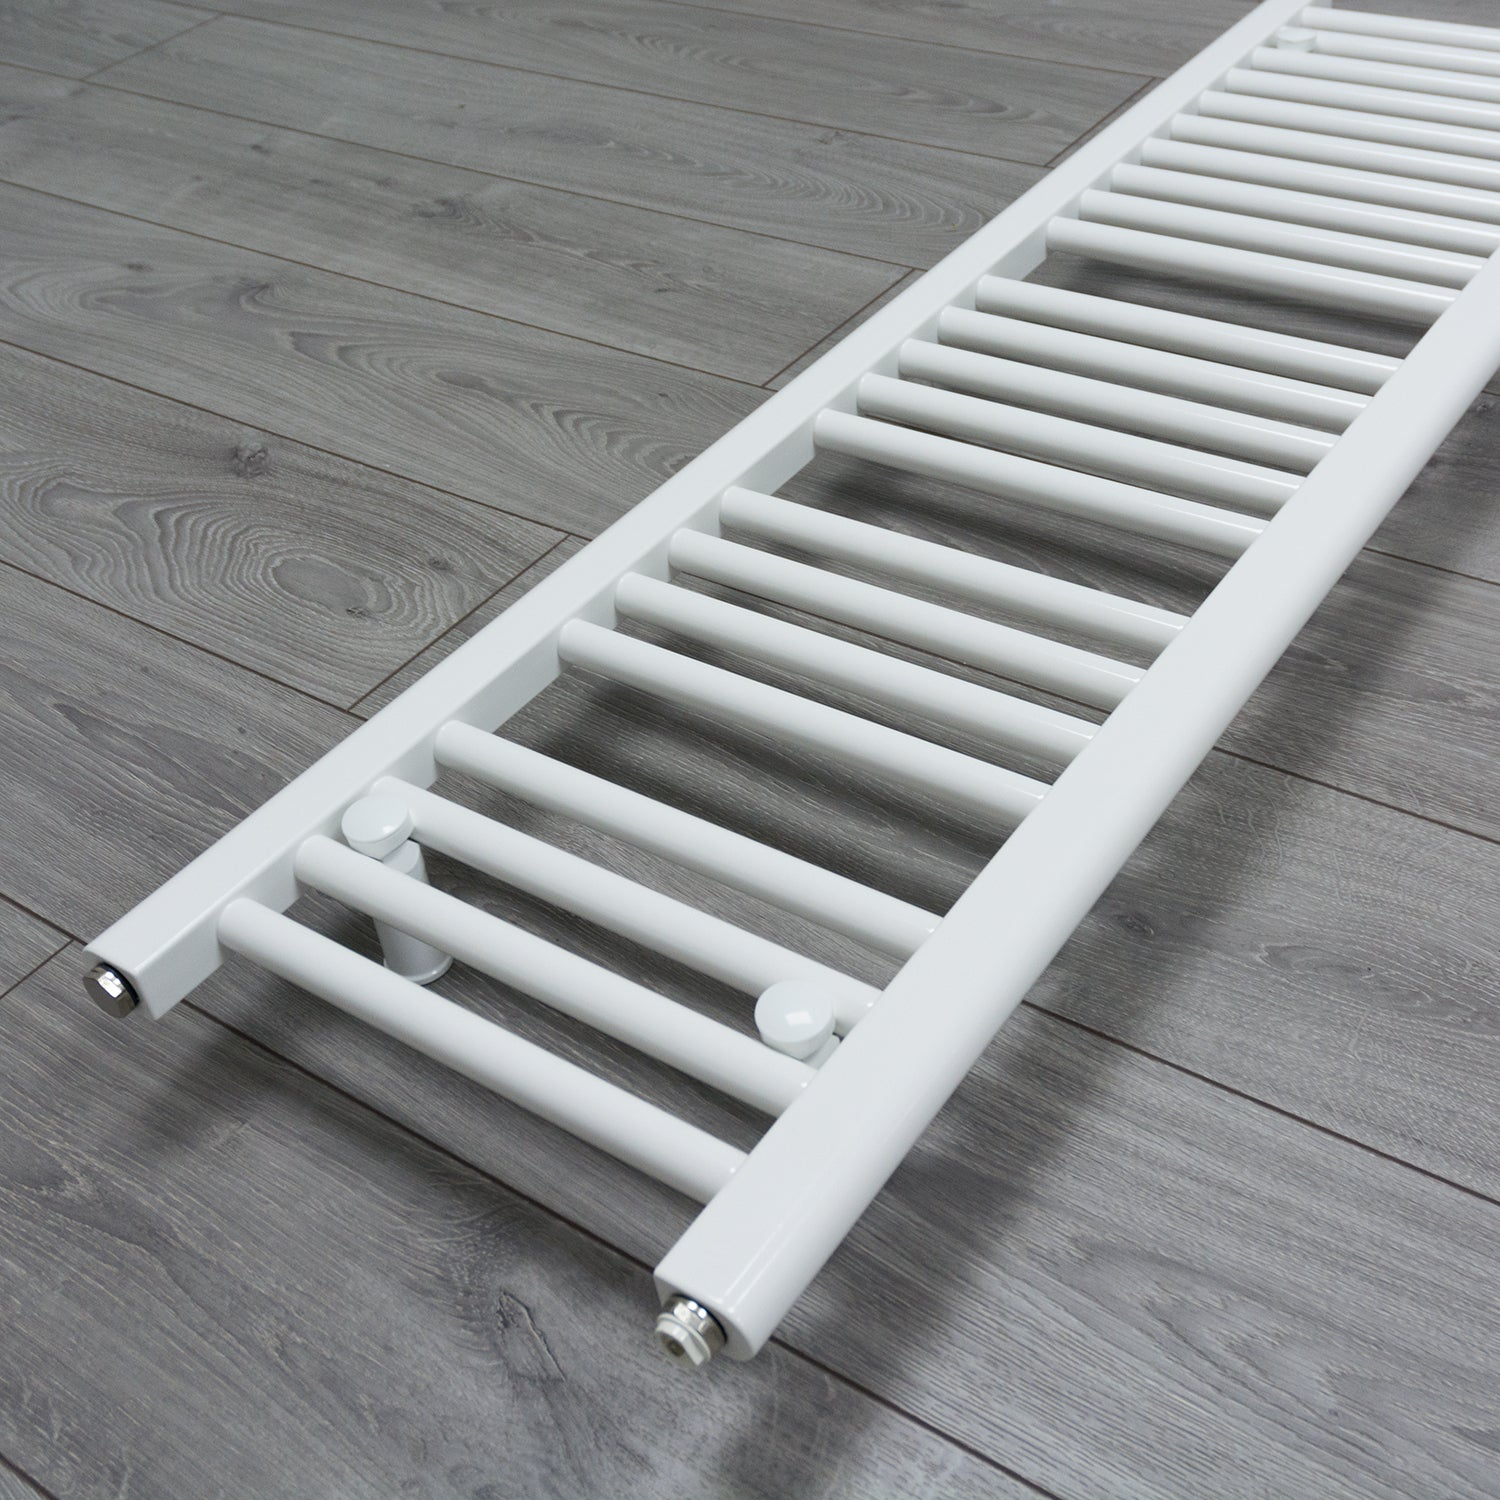 400mm x 600mm White Heated Towel Rail Radiator Close Up Image